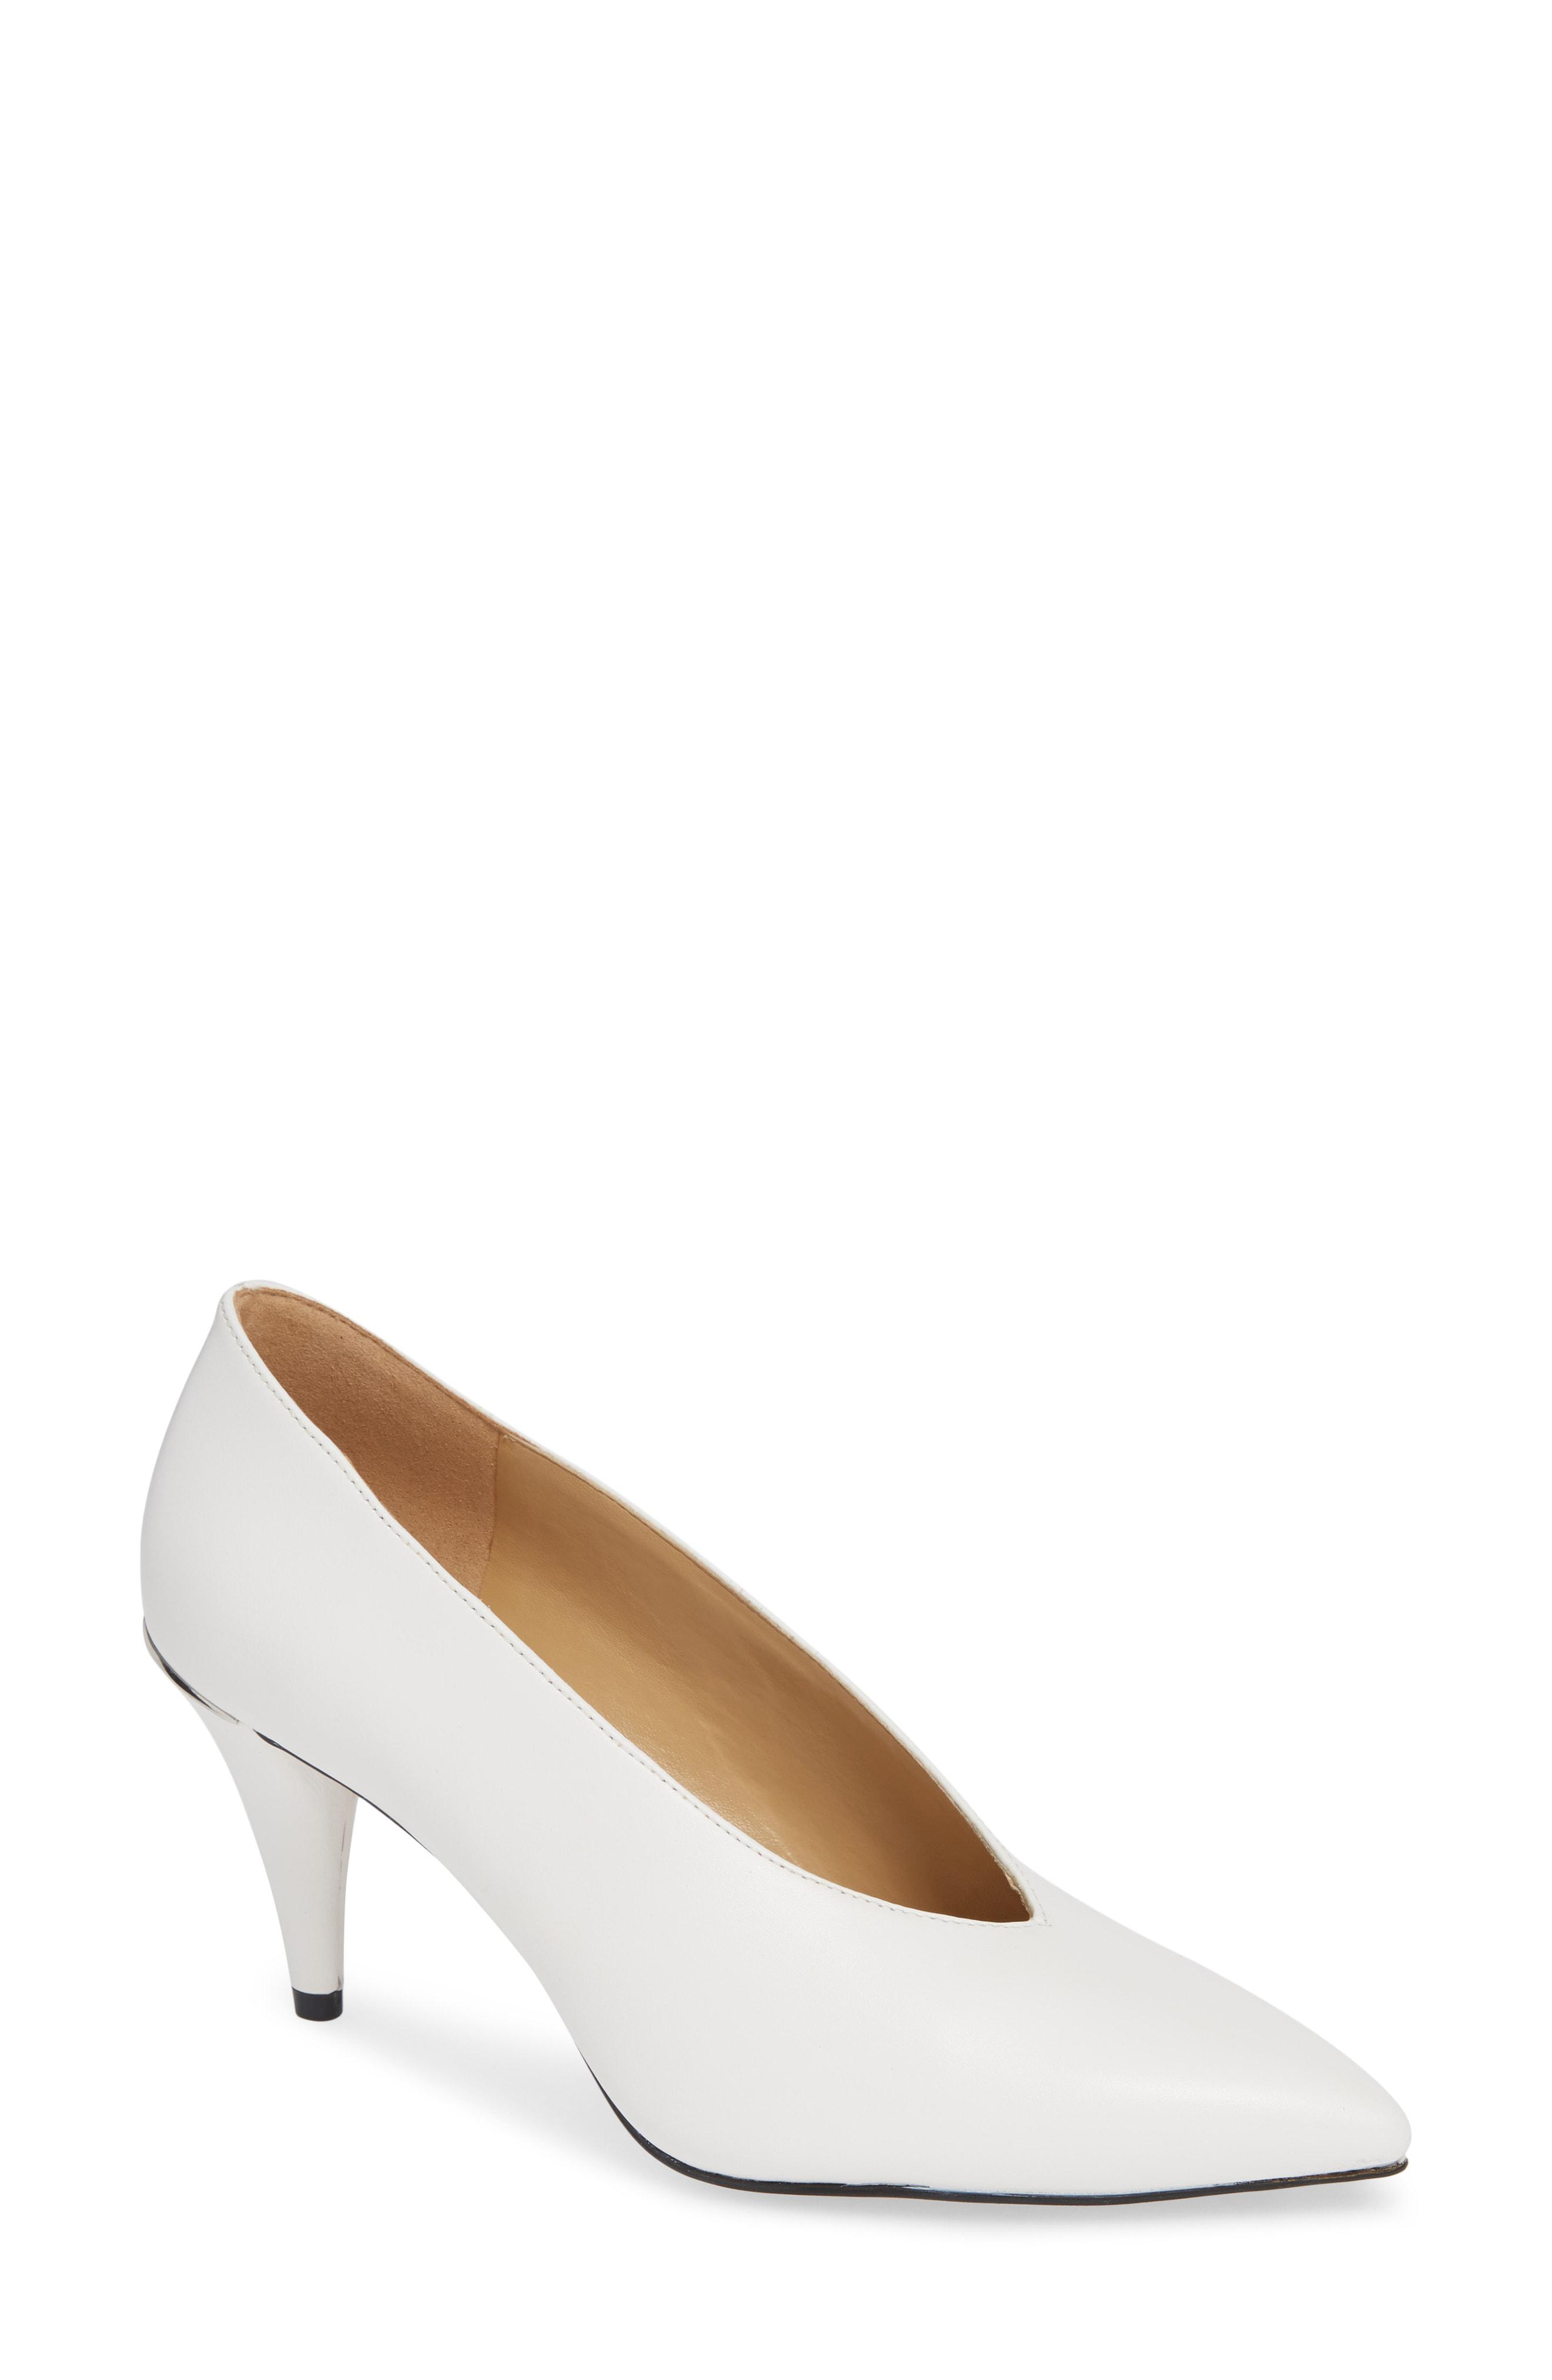 ef4cd71add81 Lyst - MICHAEL Michael Kors Lizzy Pointed Toe Pump in White